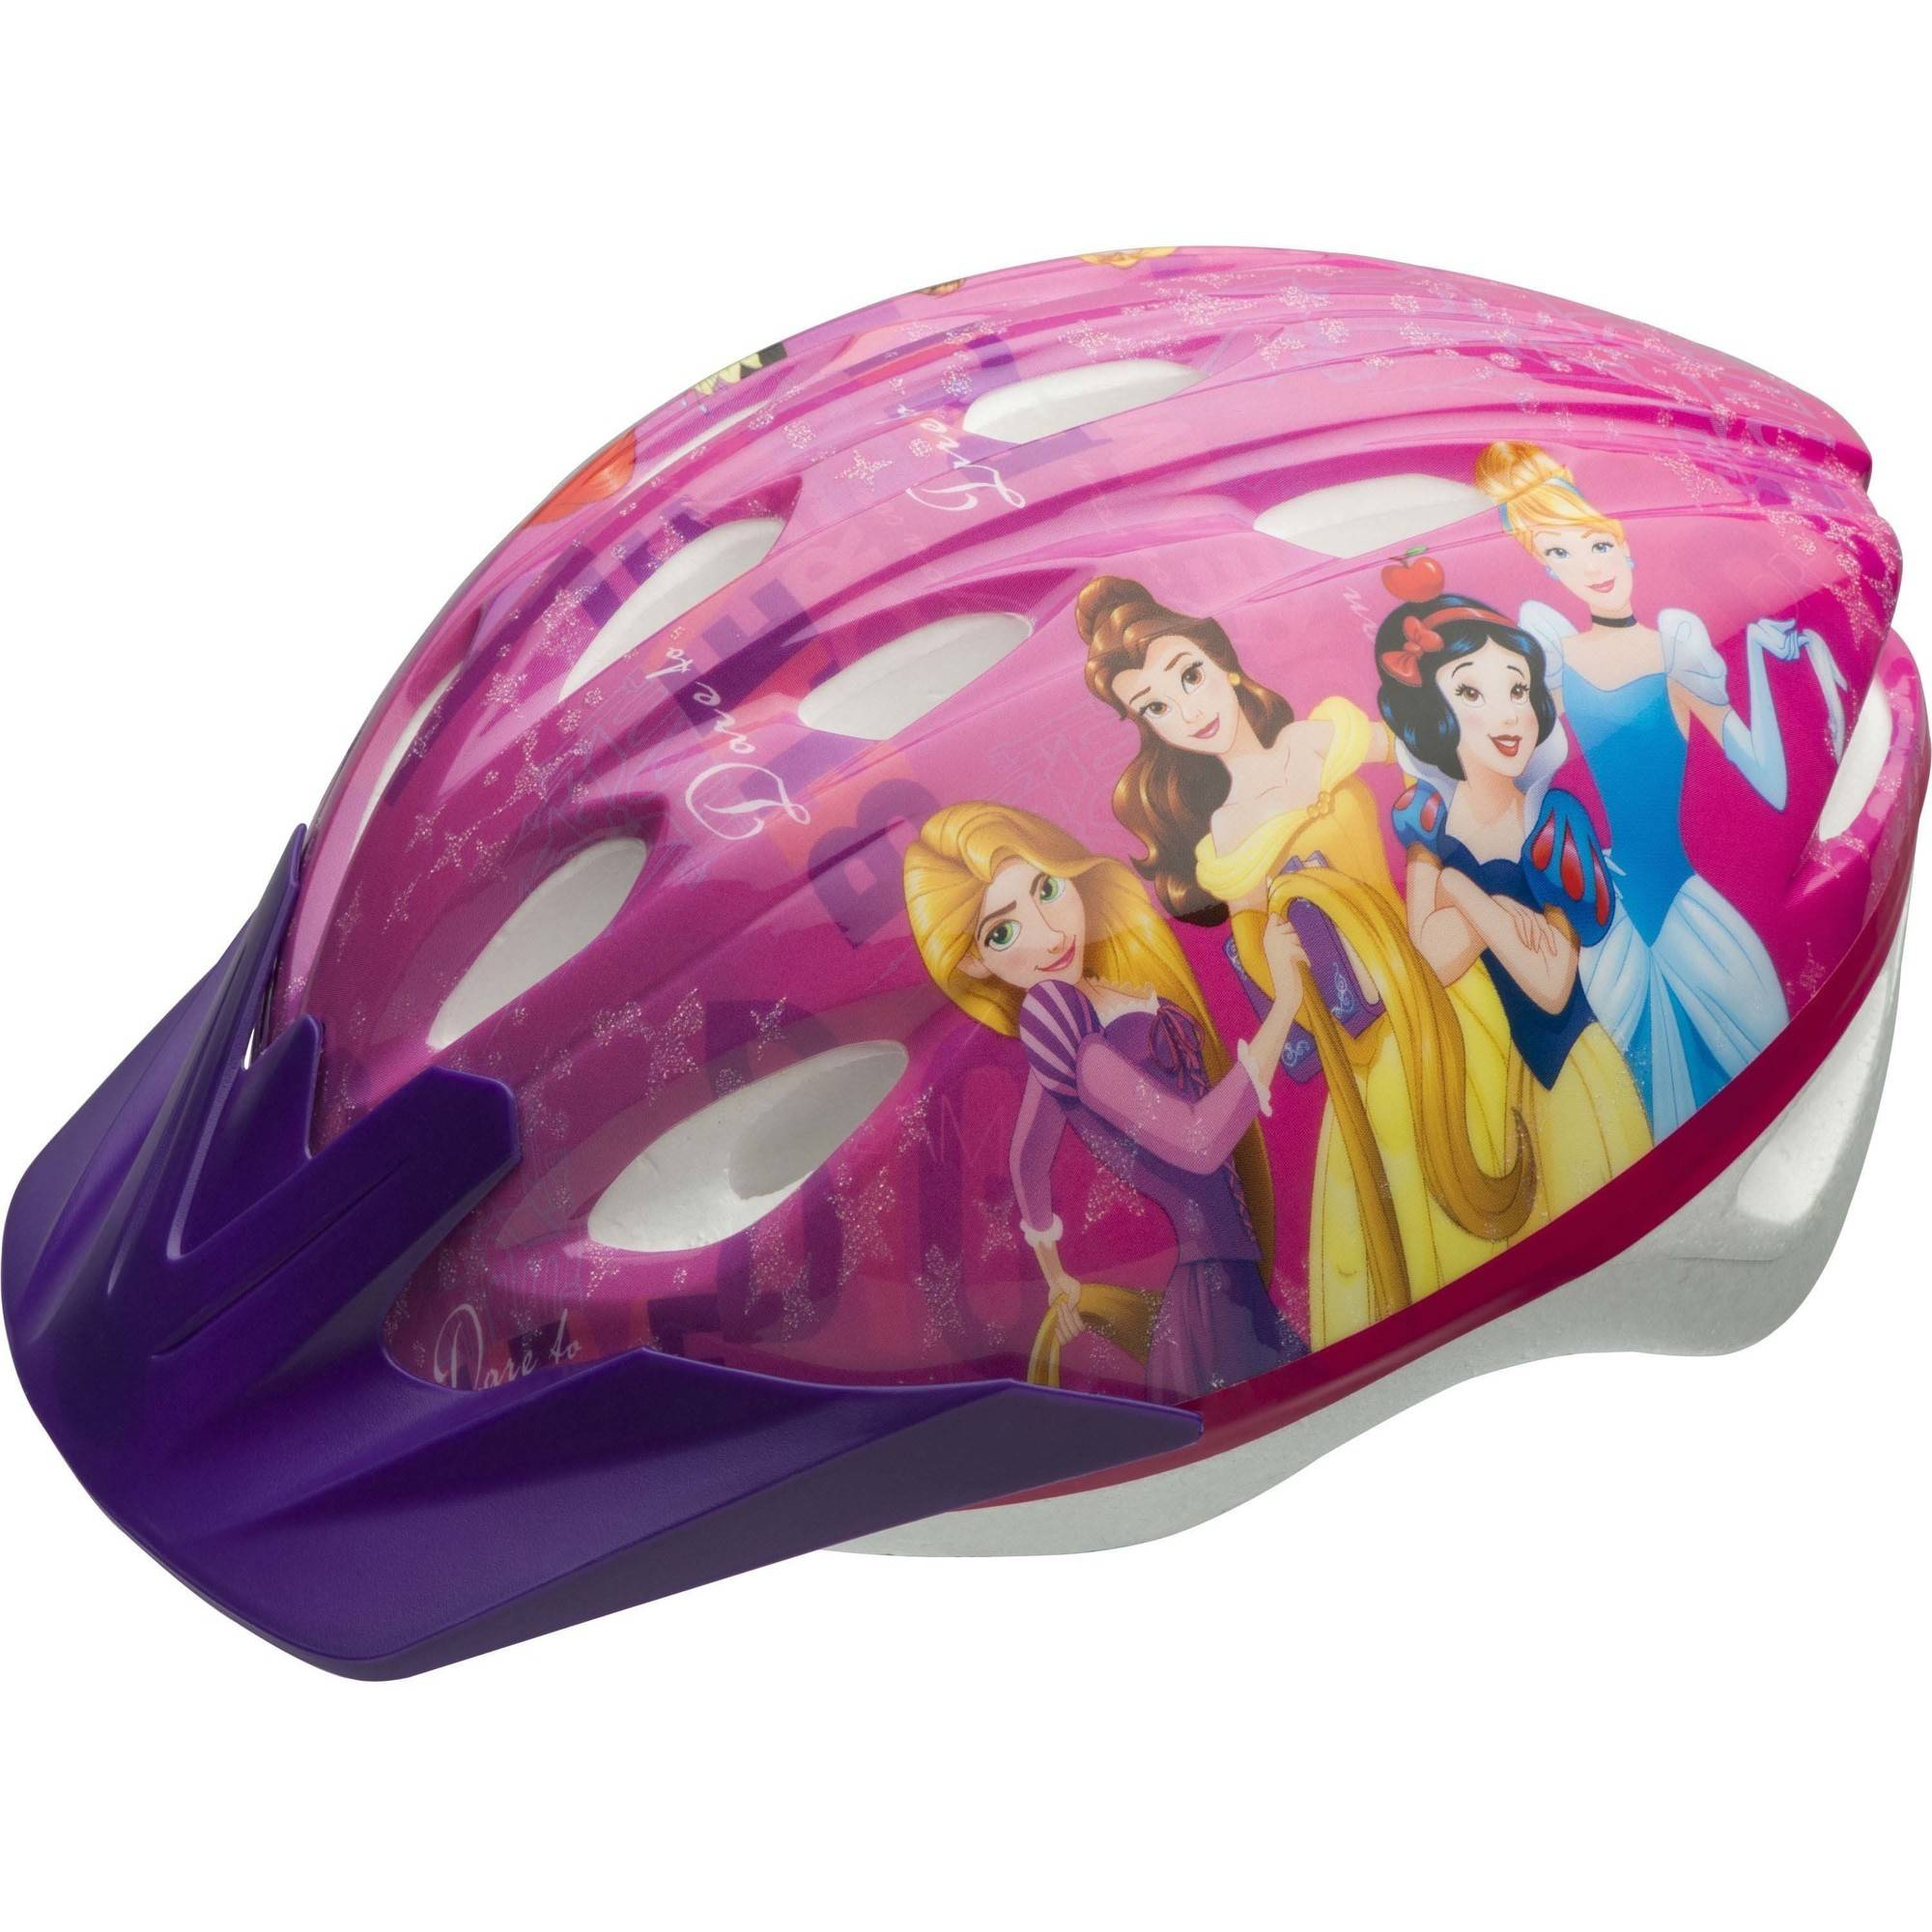 Bell Sports Disney Princess Dare to Believe Child Bike Helmet, Pink by Bell Sports